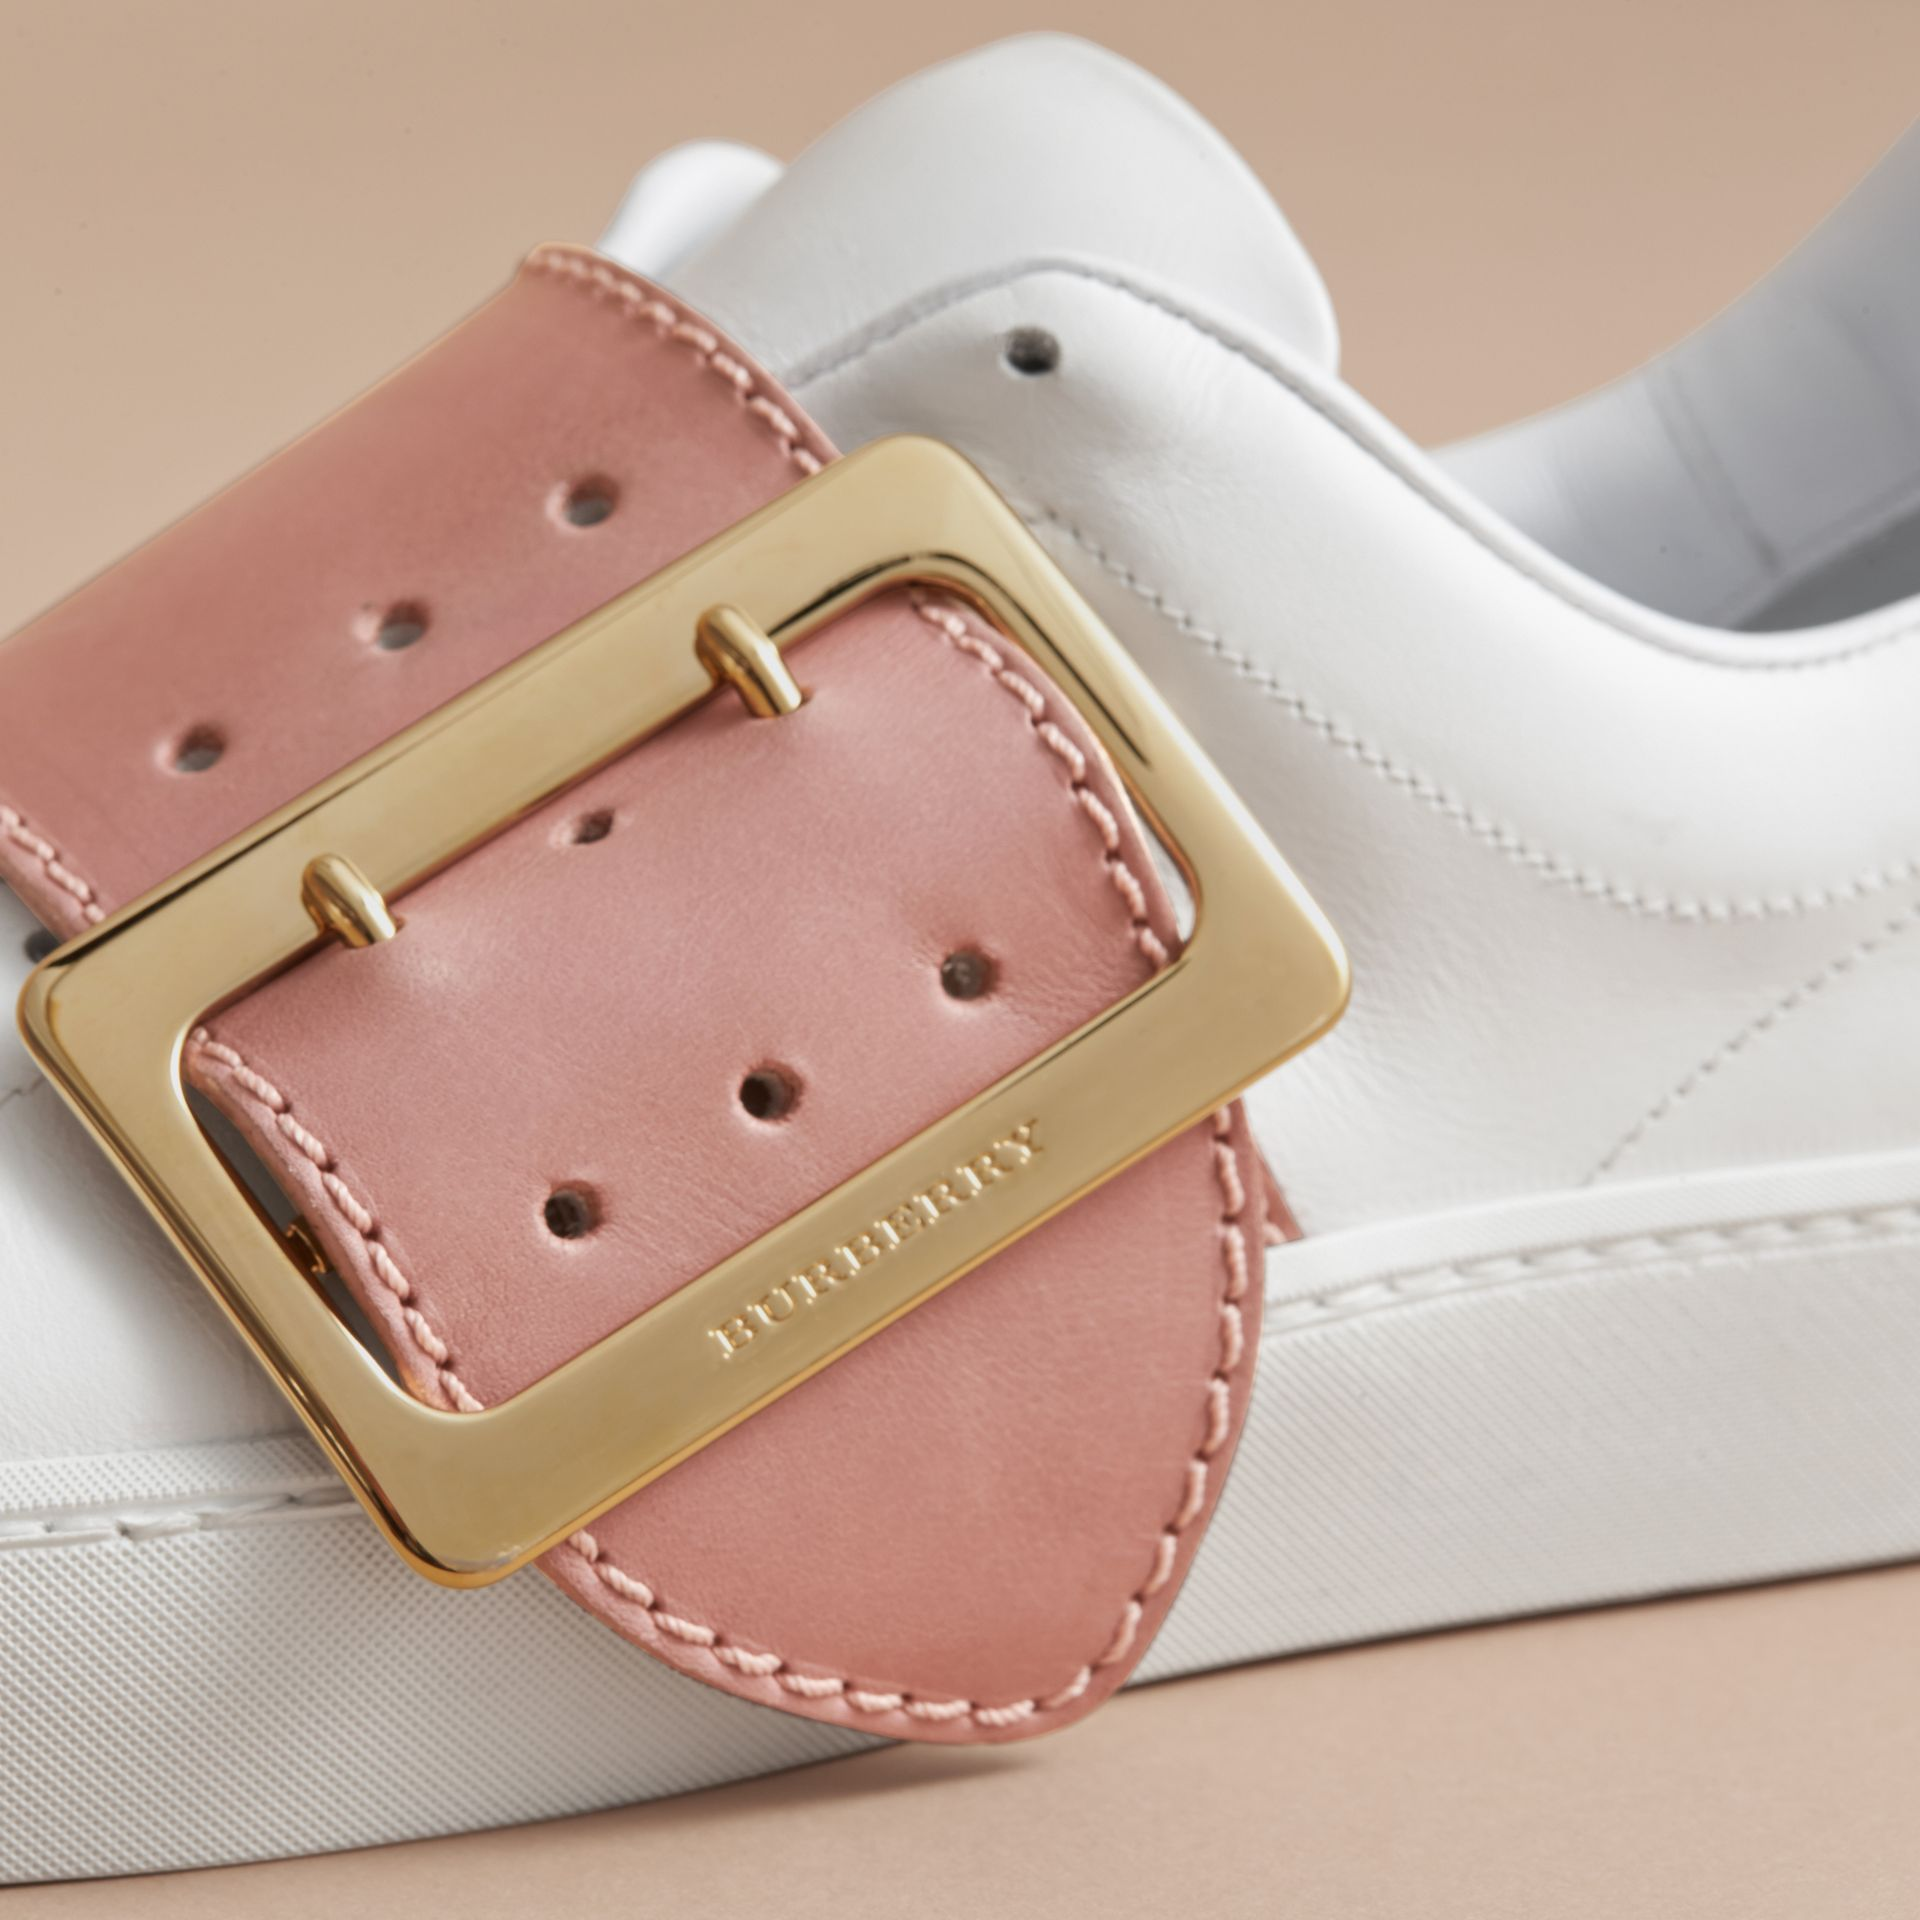 Buckle Detail Leather Trainers in Pink Apricot - Women | Burberry United States - gallery image 2